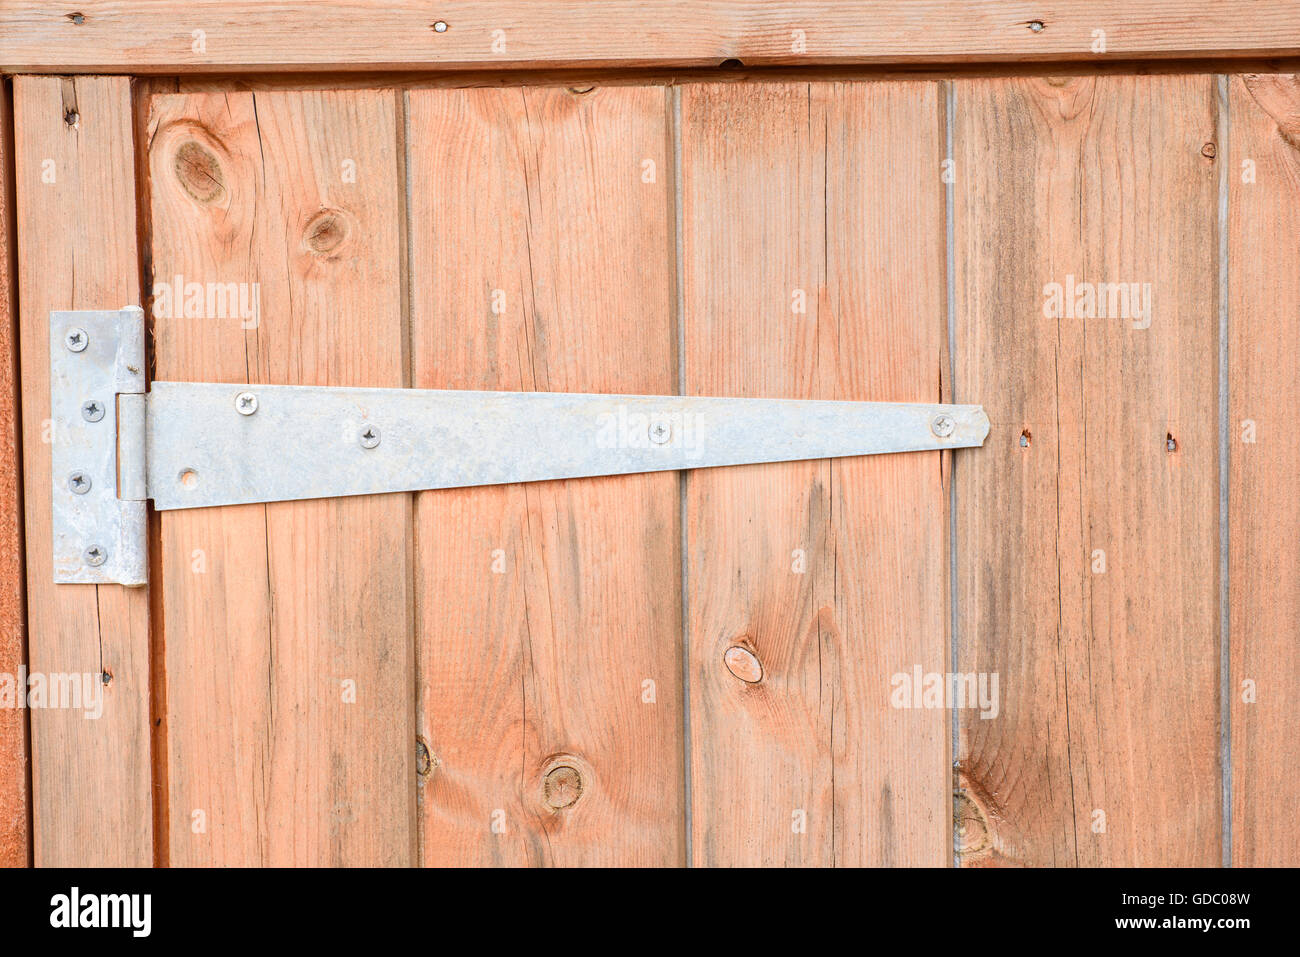 Heavy Duty Hinge On A Wooden Shed Door